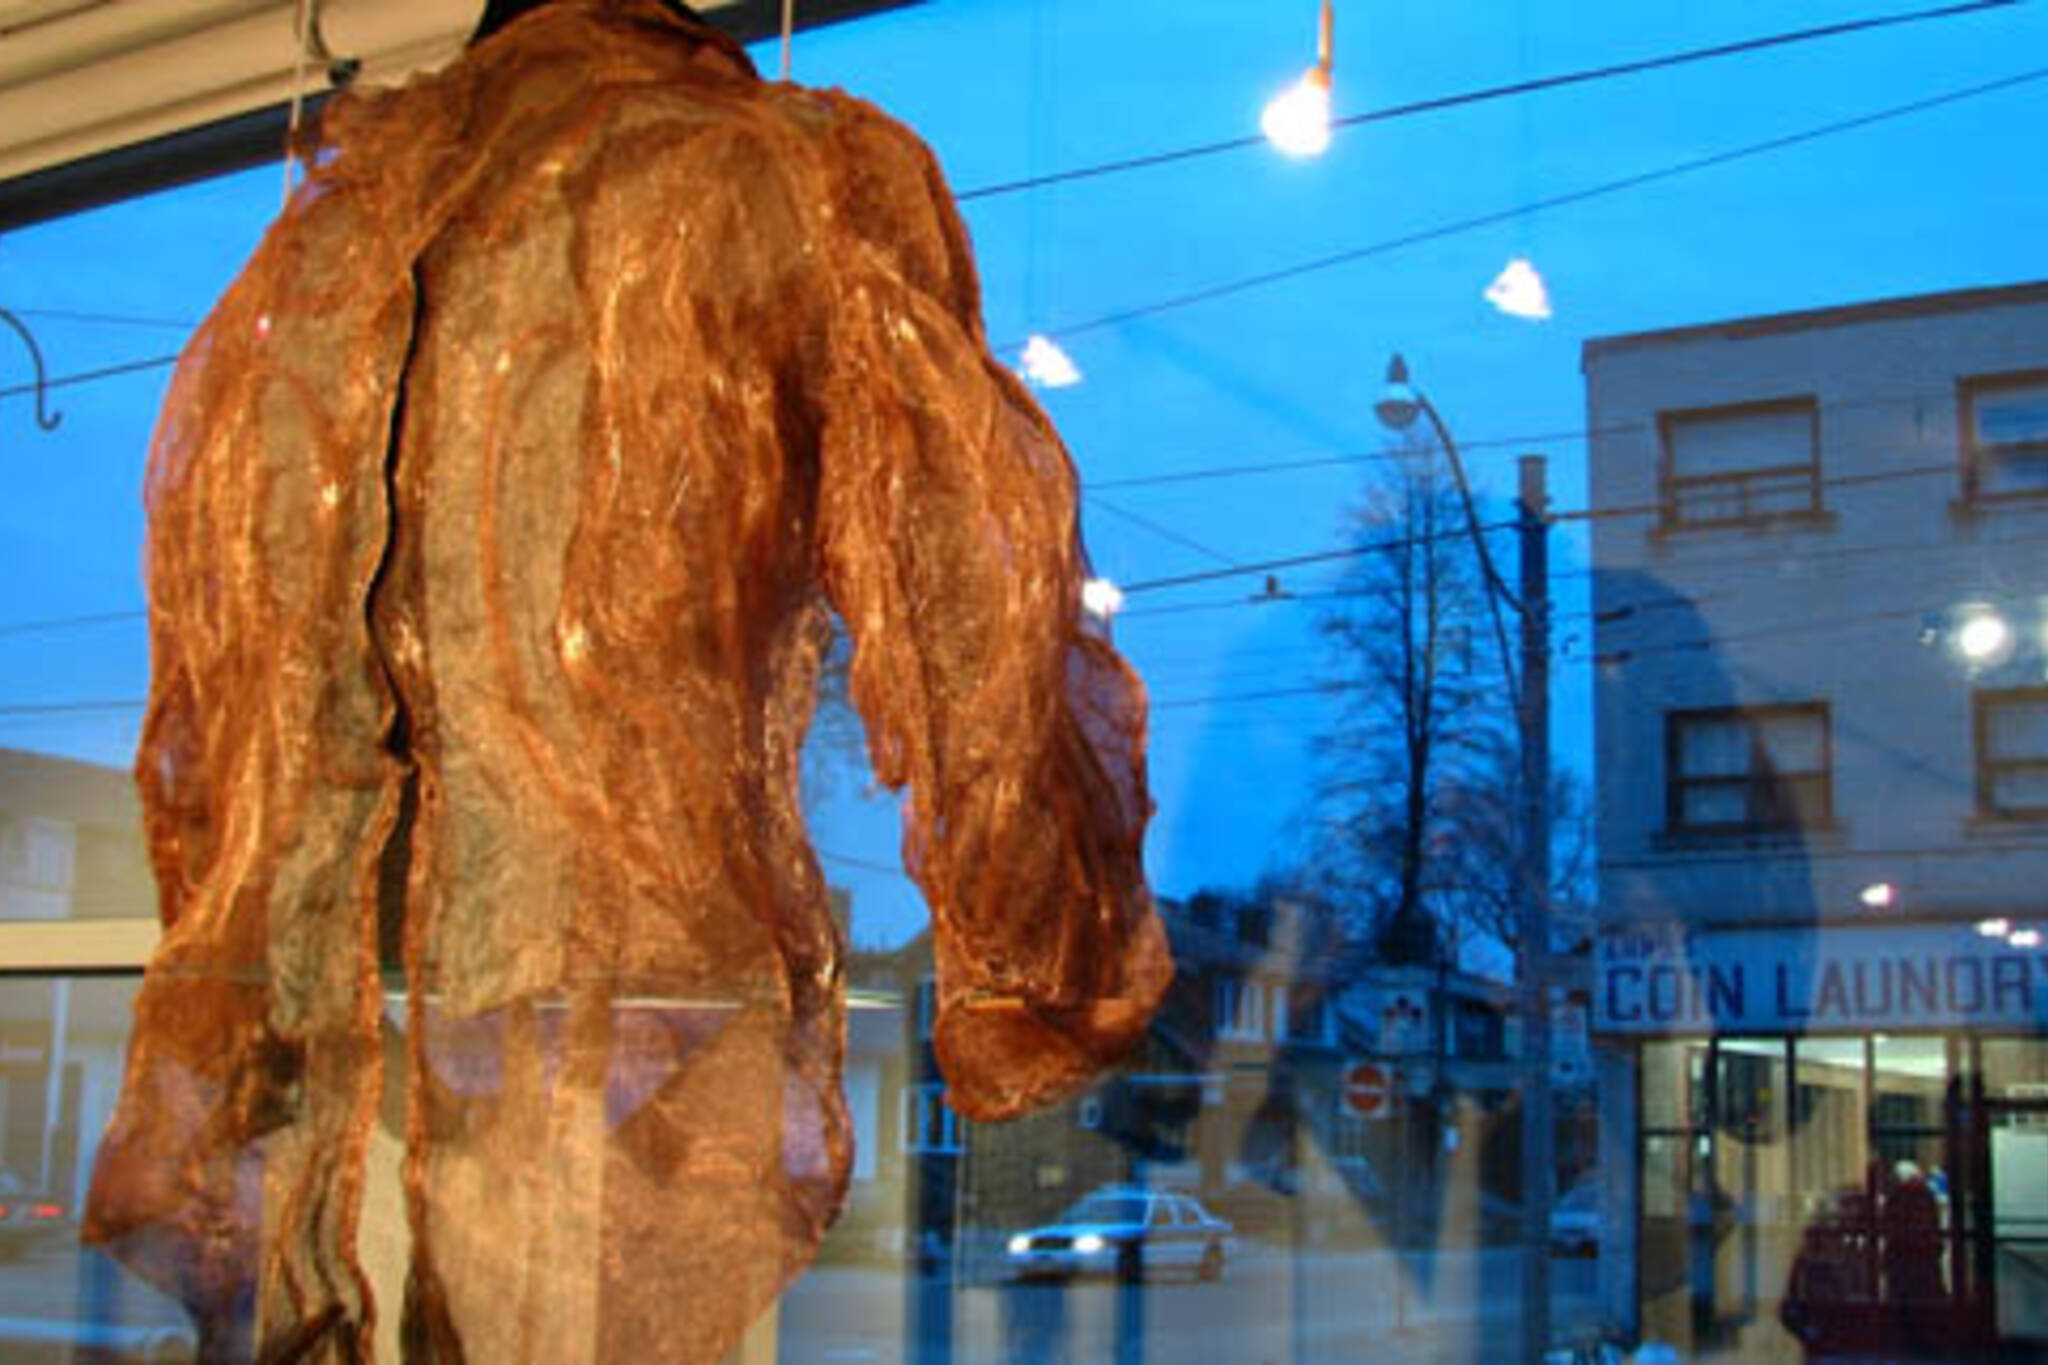 Copper screening jacket by Shelagh Young, part of Domestic Science at the Pentimento Fine Art Gallery